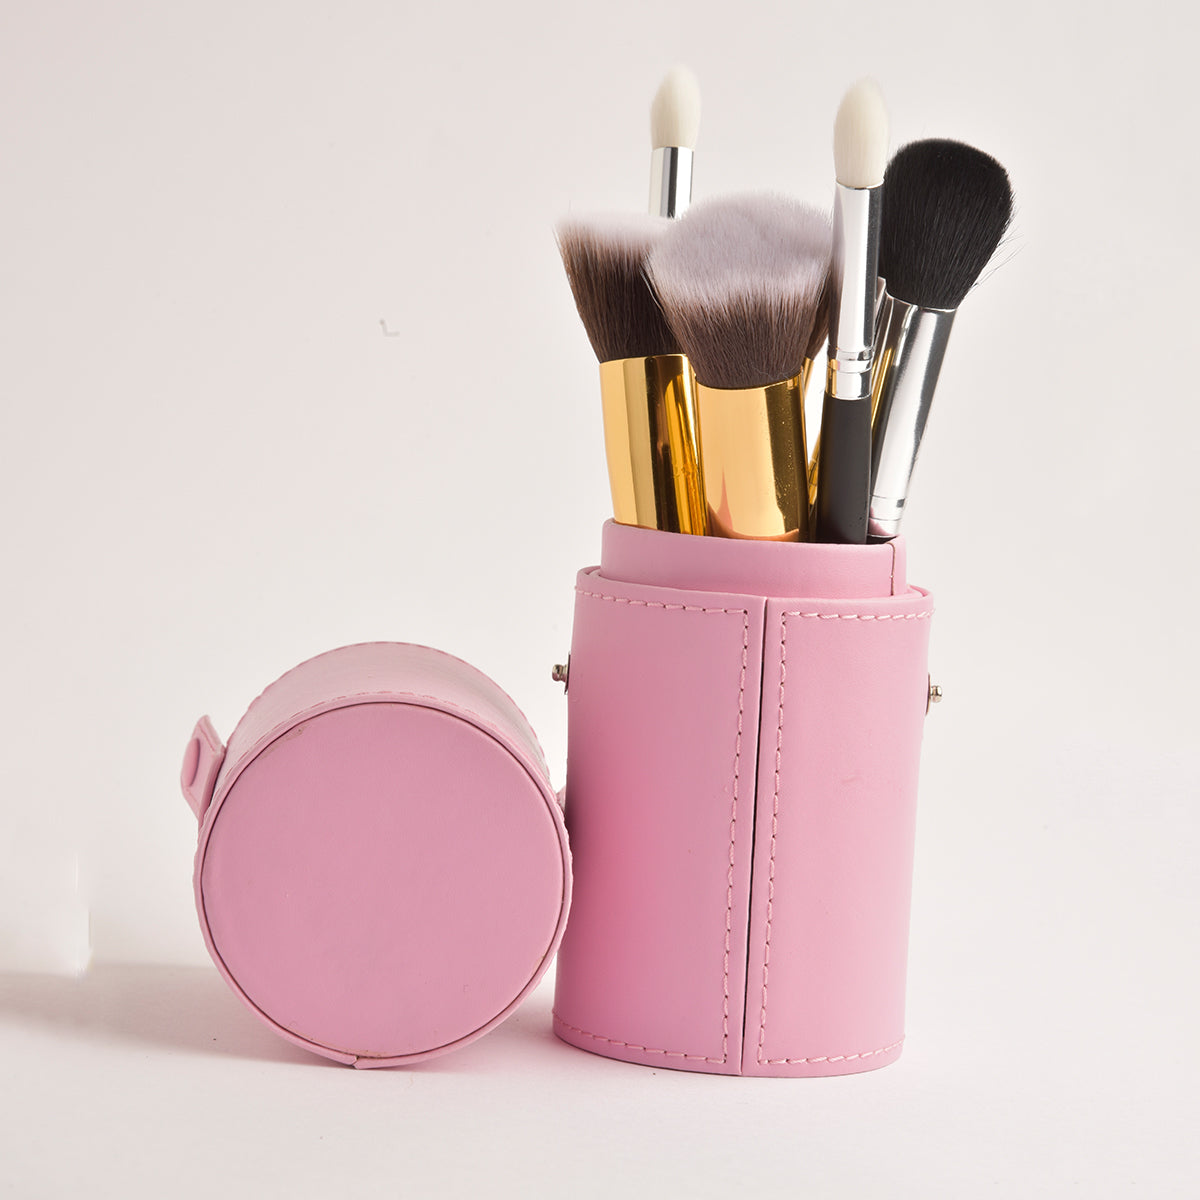 Leather Cosmetics Storage Case - Pink tubby case